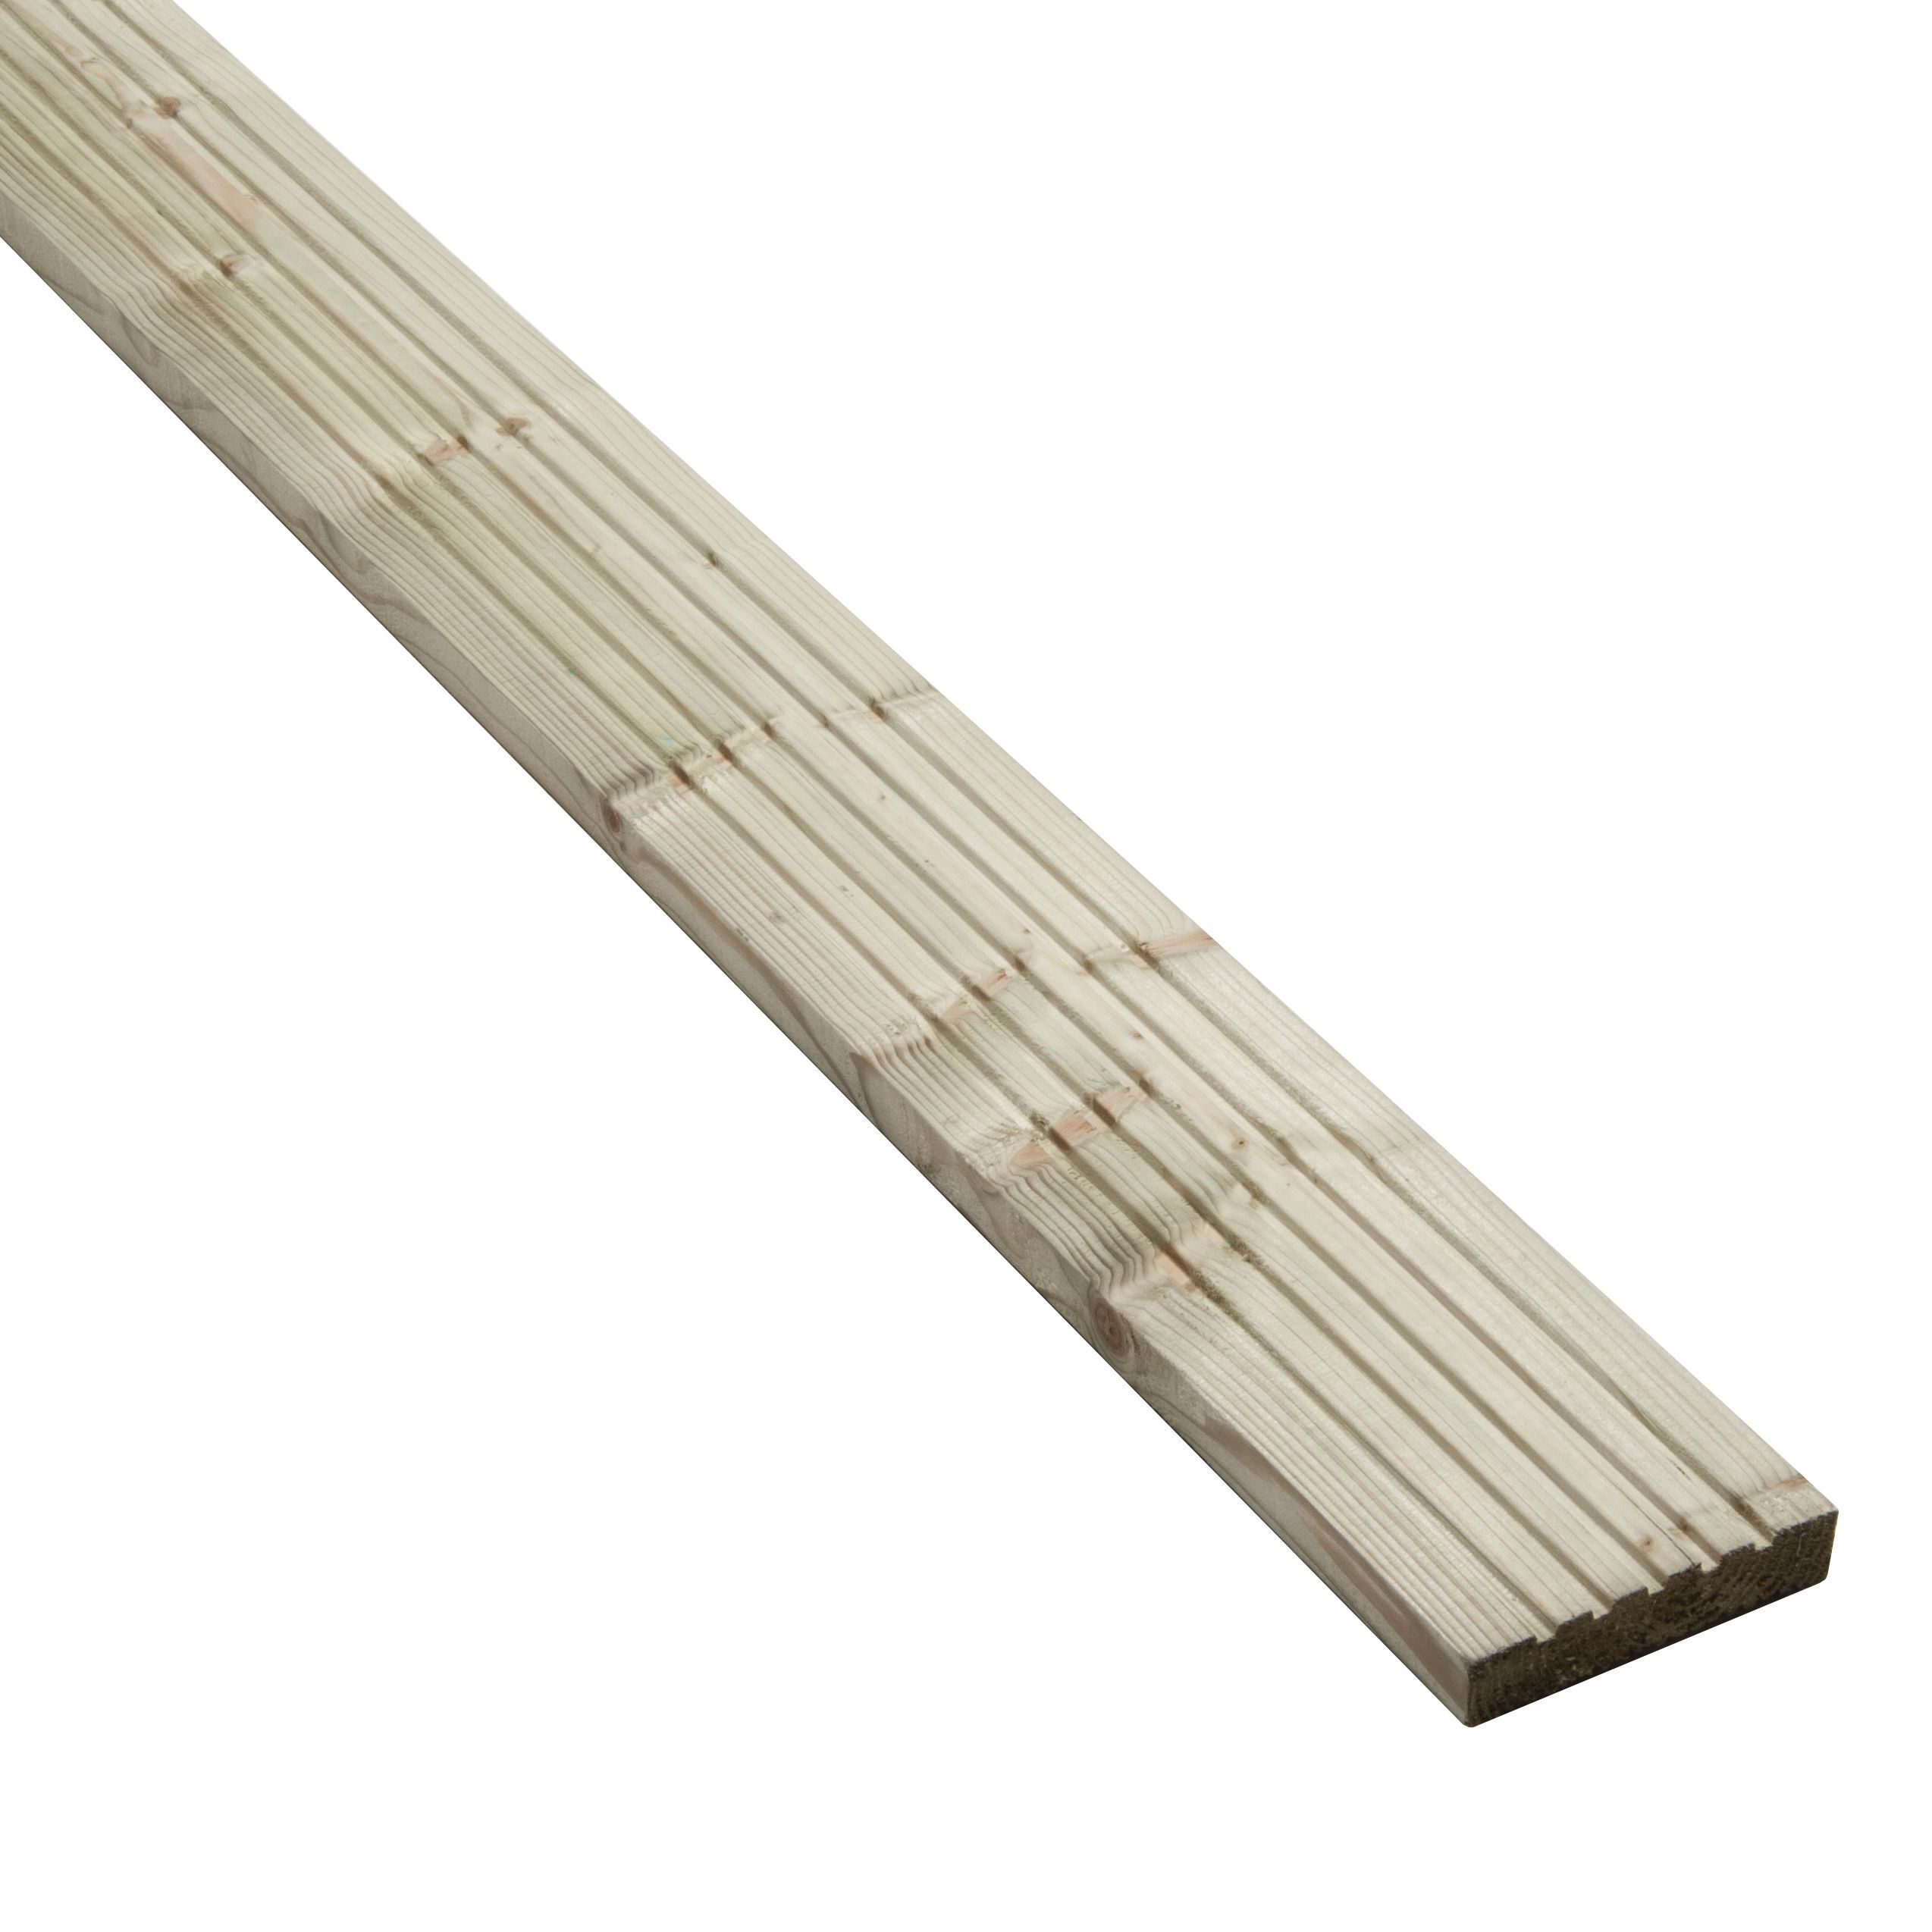 Blooma Madeira Value Spruce Deck Board (t)24mm (w)120mm (l)2400mm